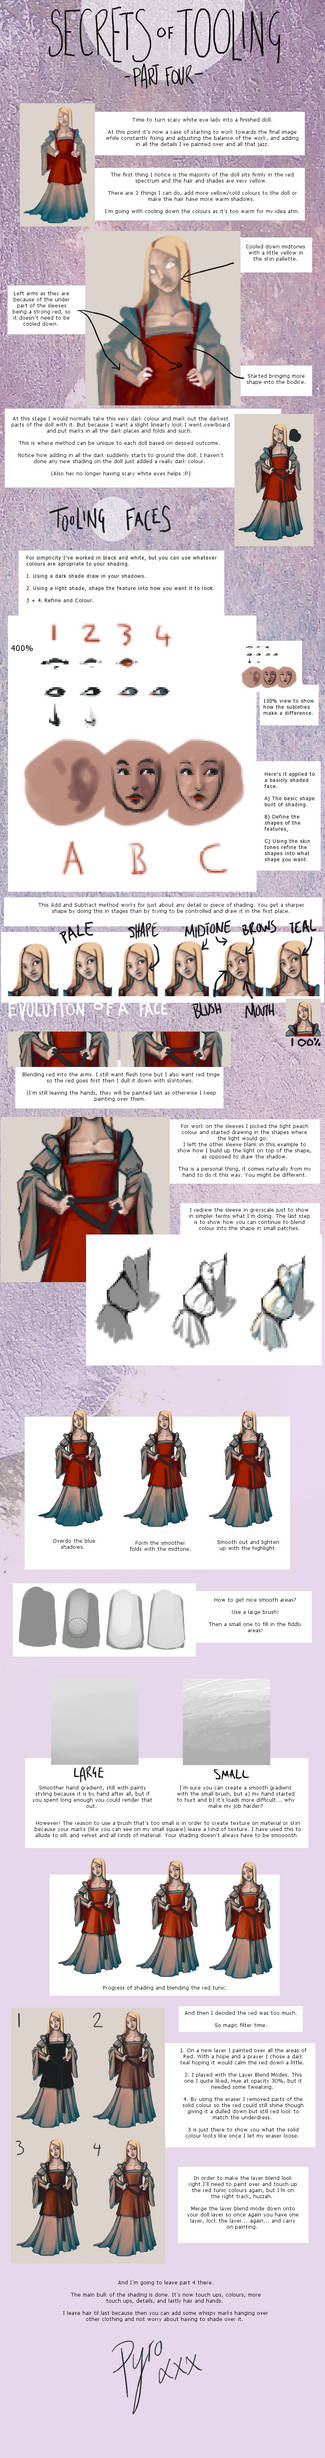 Secrets of Tooling - Part 4 by FionaCreates